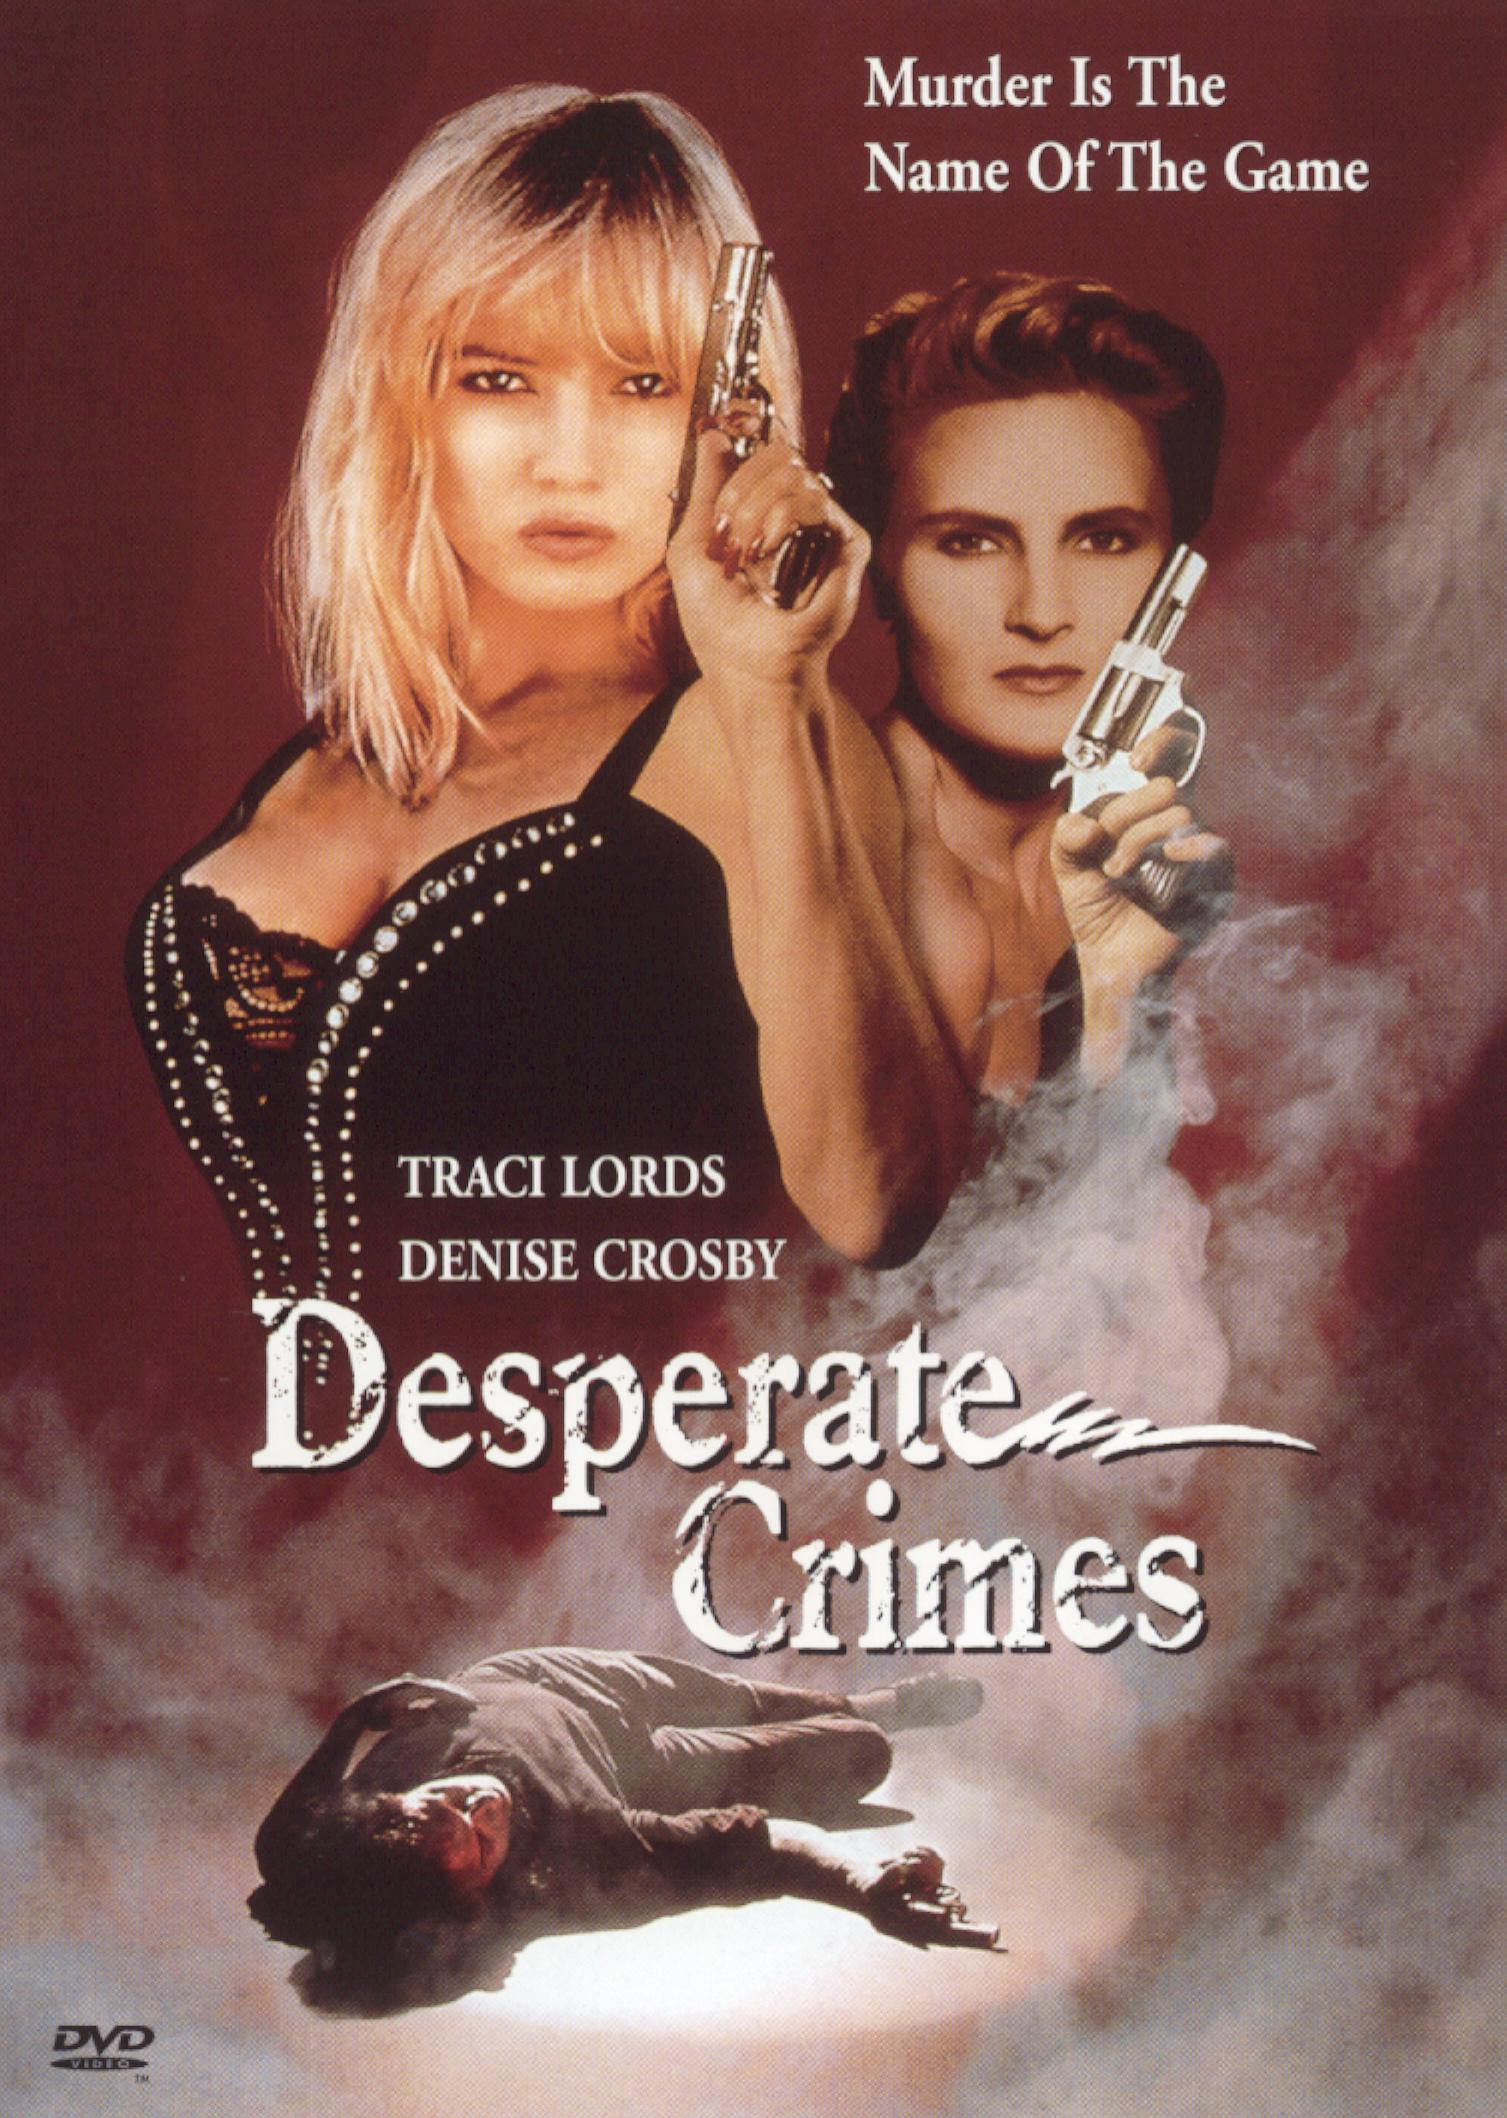 Desperate Crimes